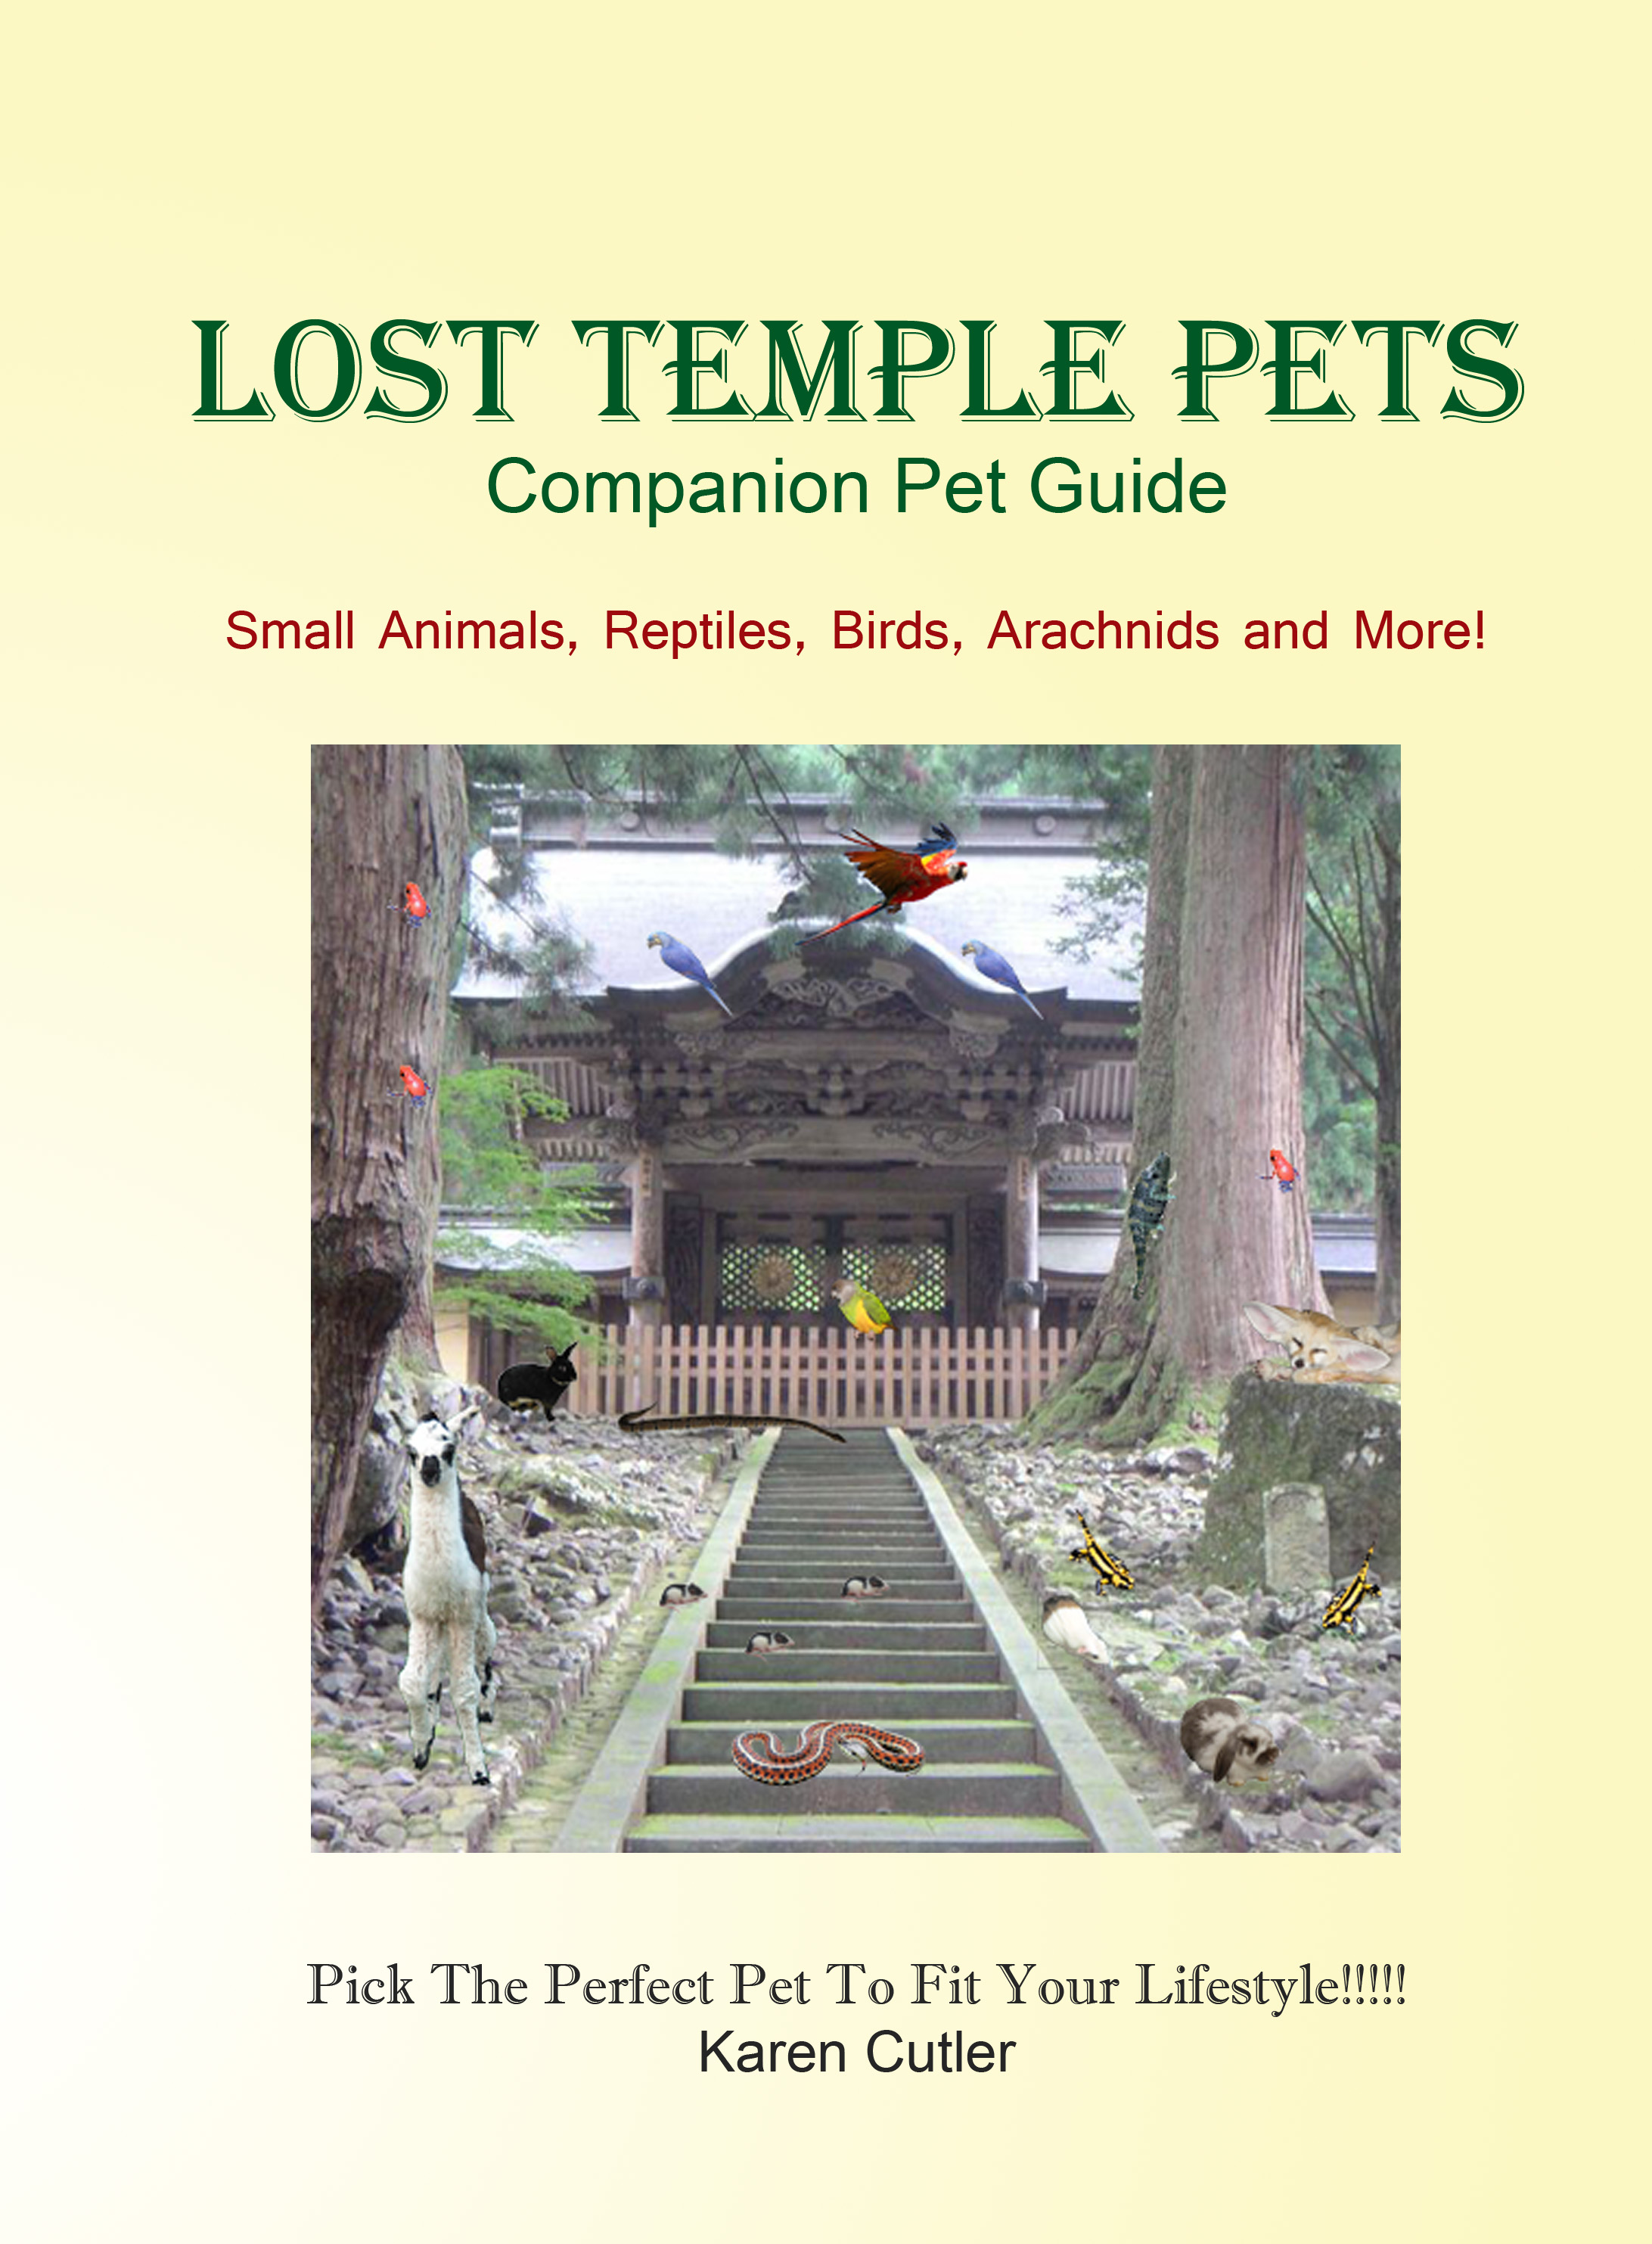 lost temple pets small animal book